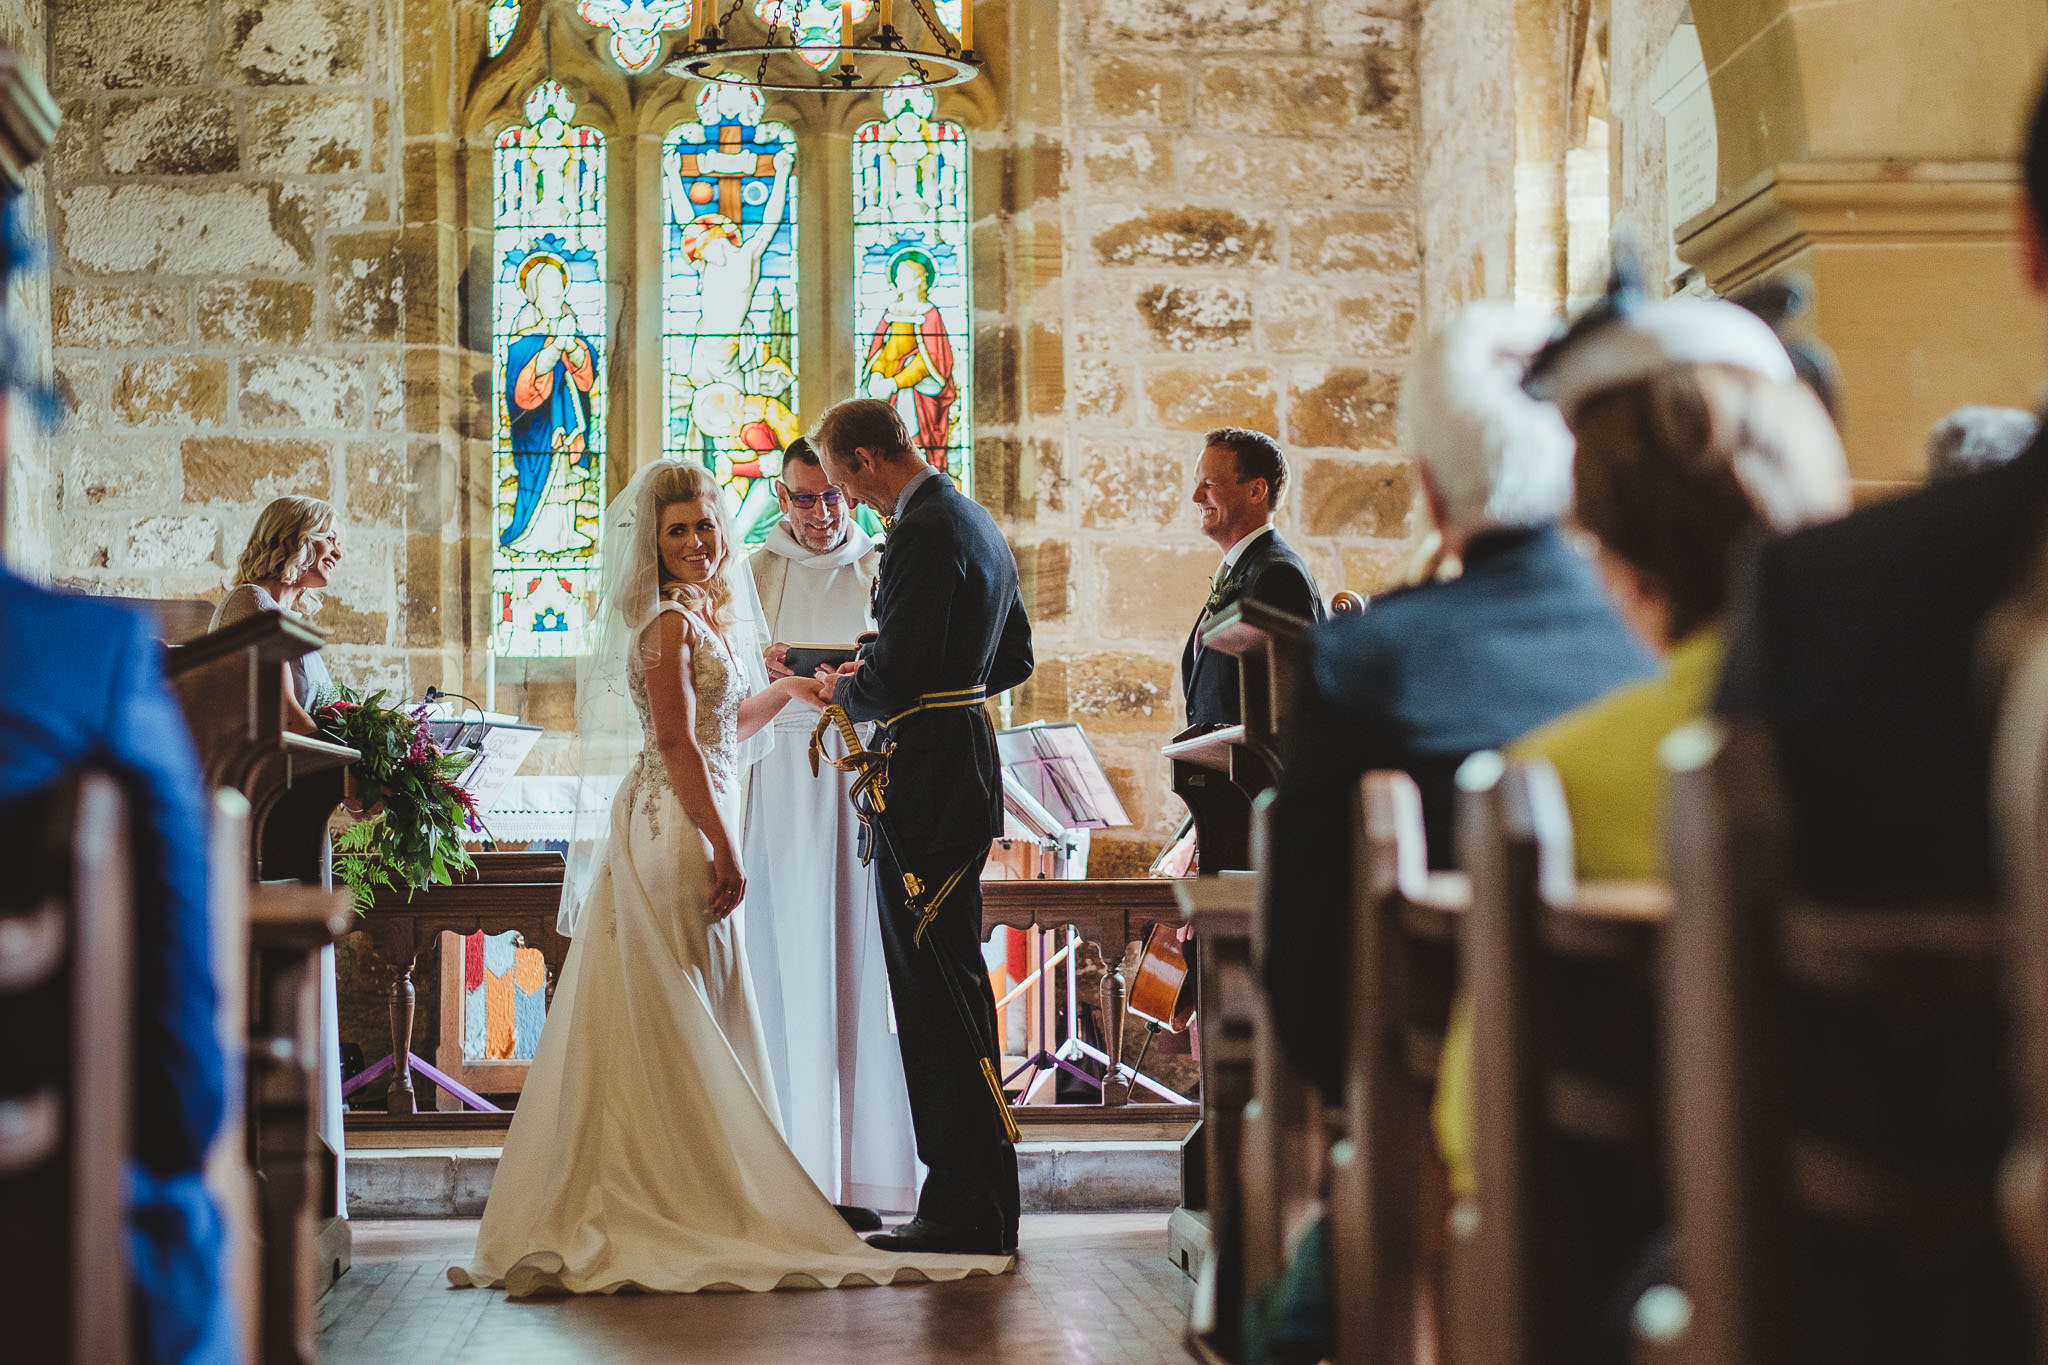 The bride and groom at the front of the church